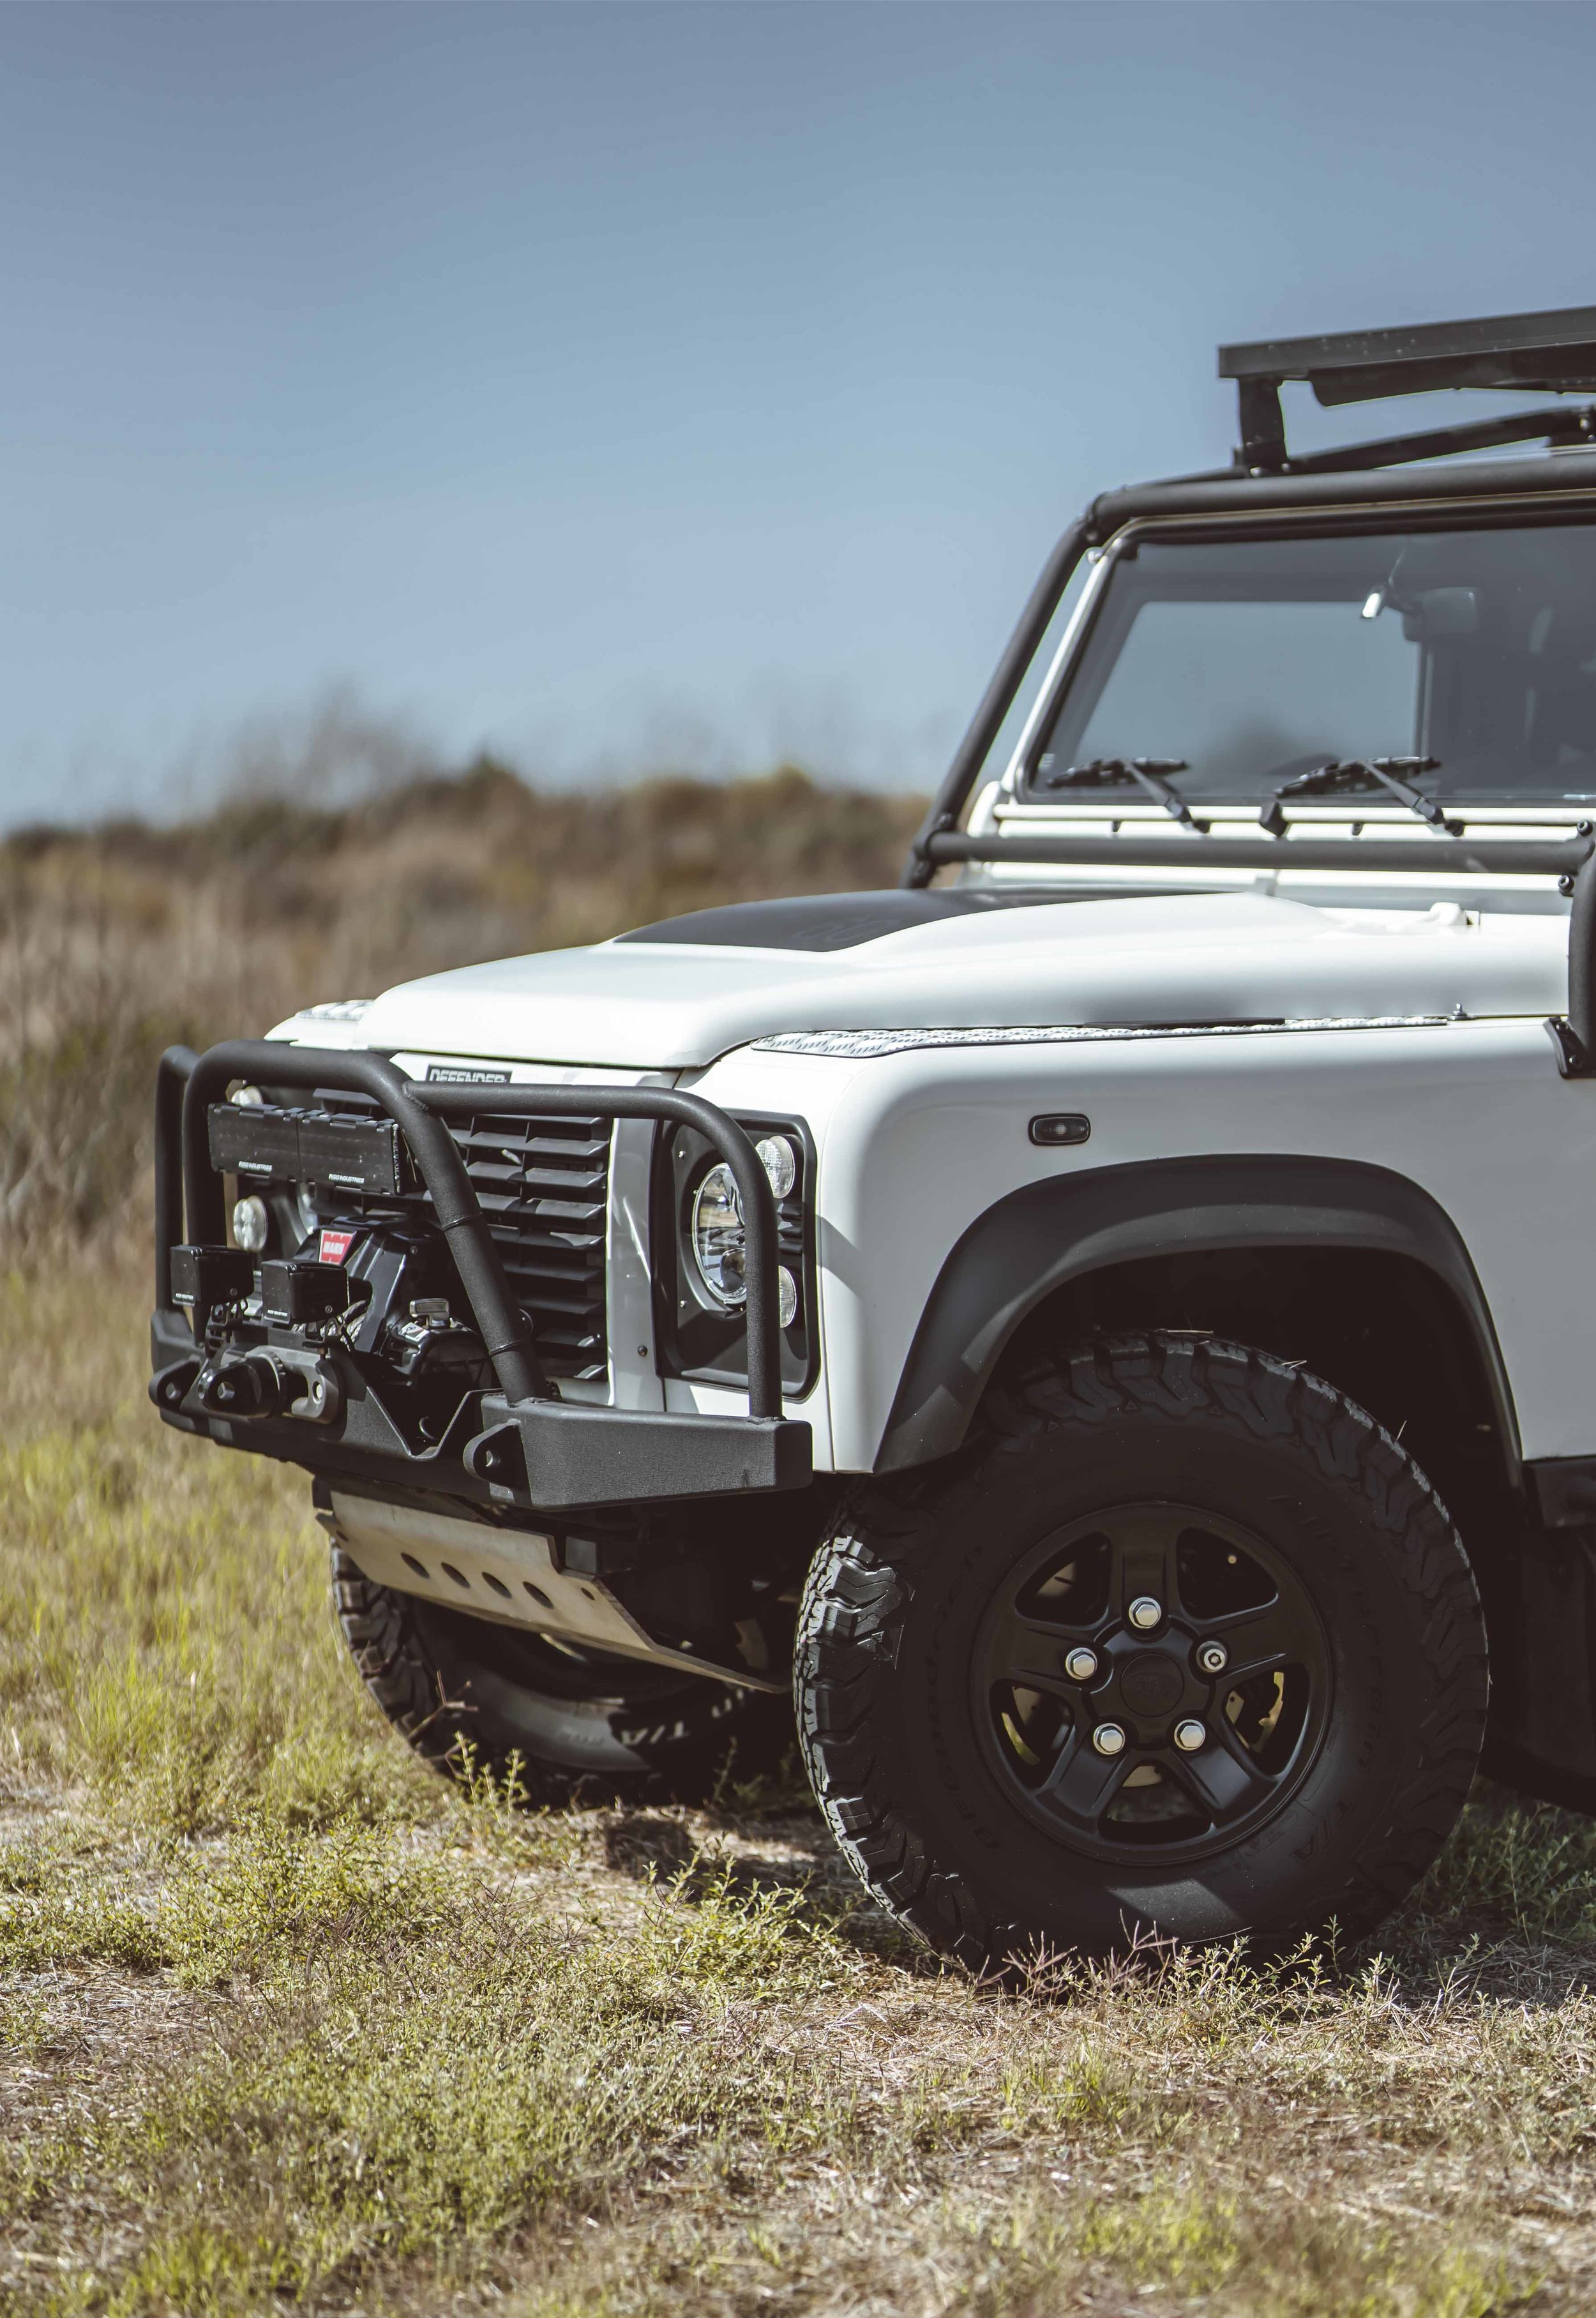 Land_Rover_130_Expedition_2xlarge_0001_Layer 16.jpg